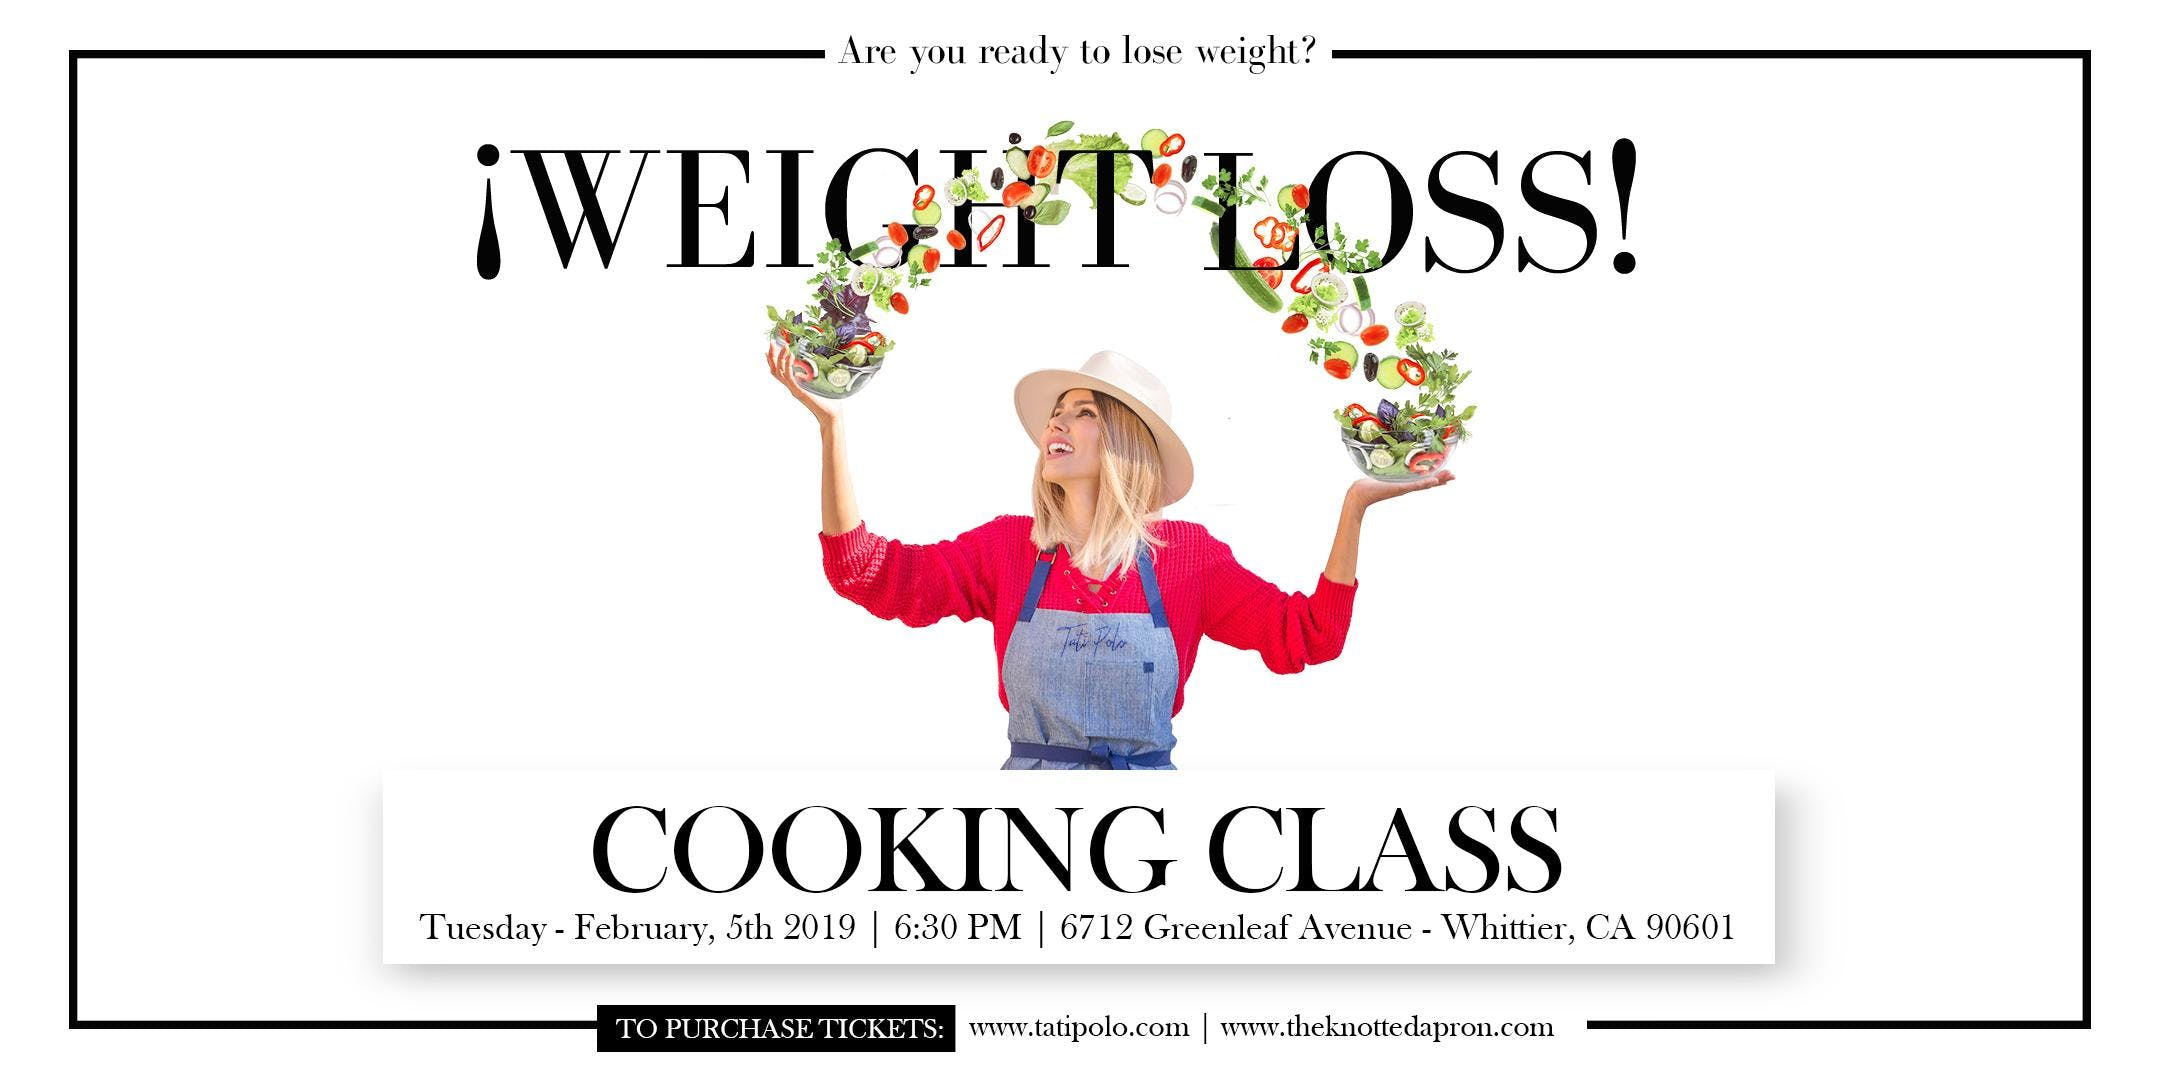 WEIGHT LOSS - COOKING CLASS